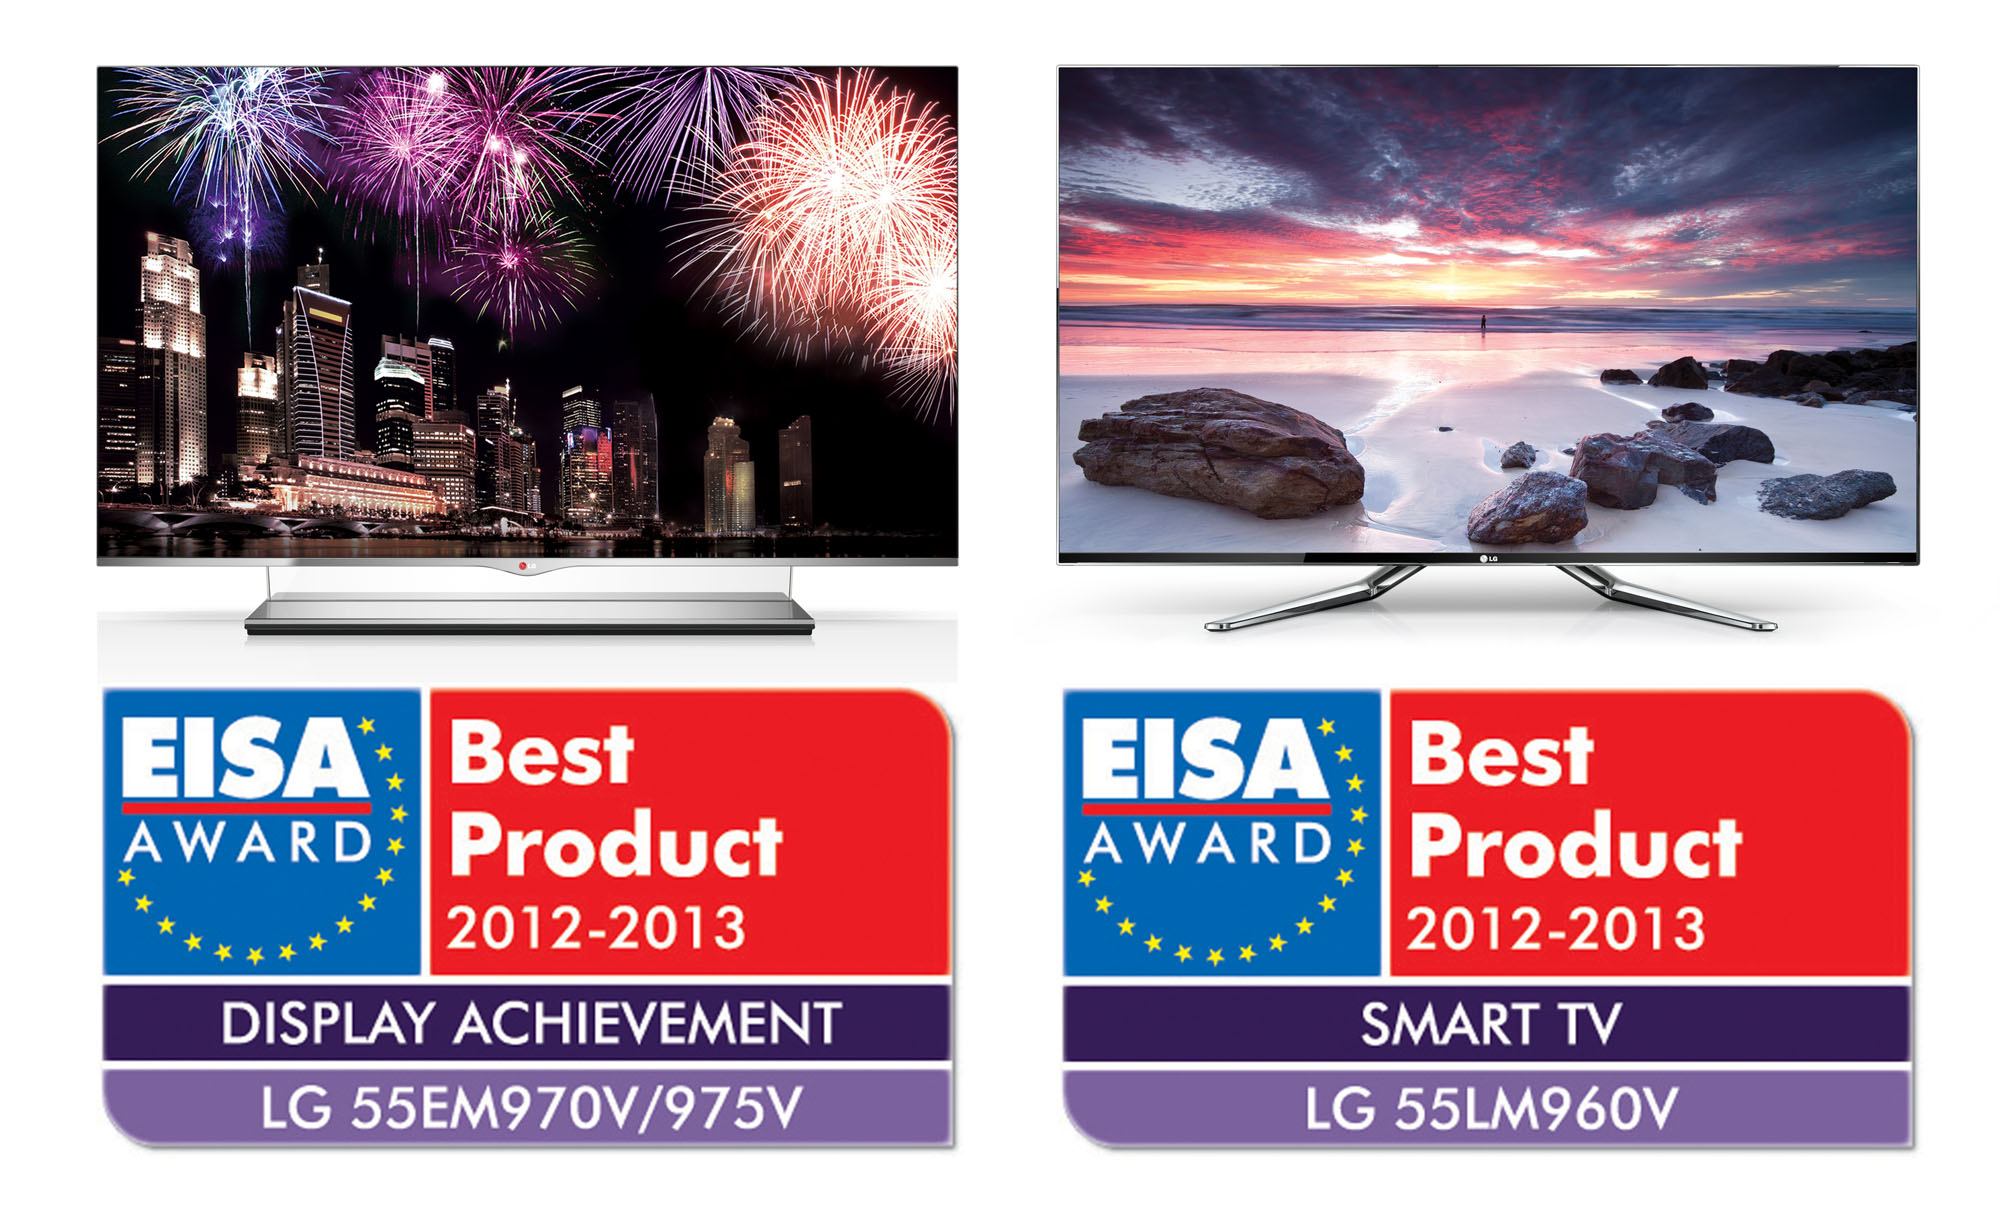 LG 55EM970V and 55LM960V placed on top of EISA Award Best Product logos for Display Achievement and Smart TV category